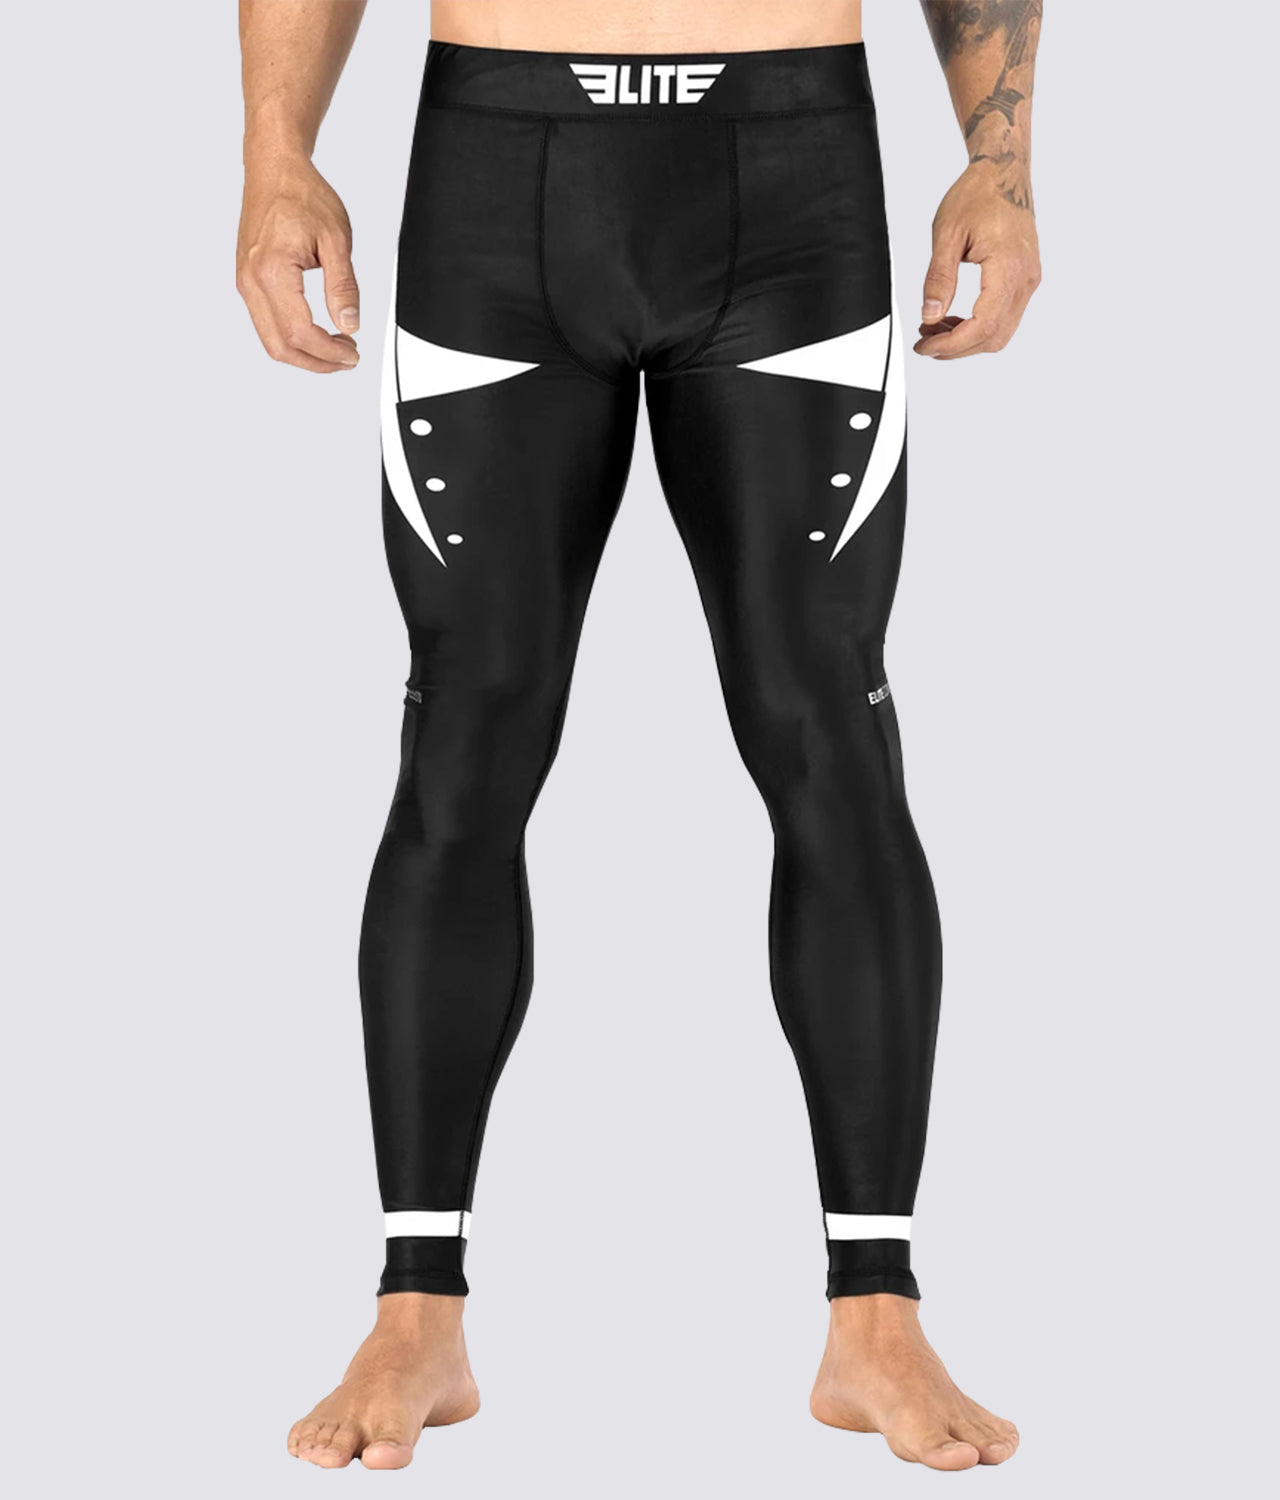 Elite Sports Star Series Lightweight Black/White Advance Compression Judo Spat Pants